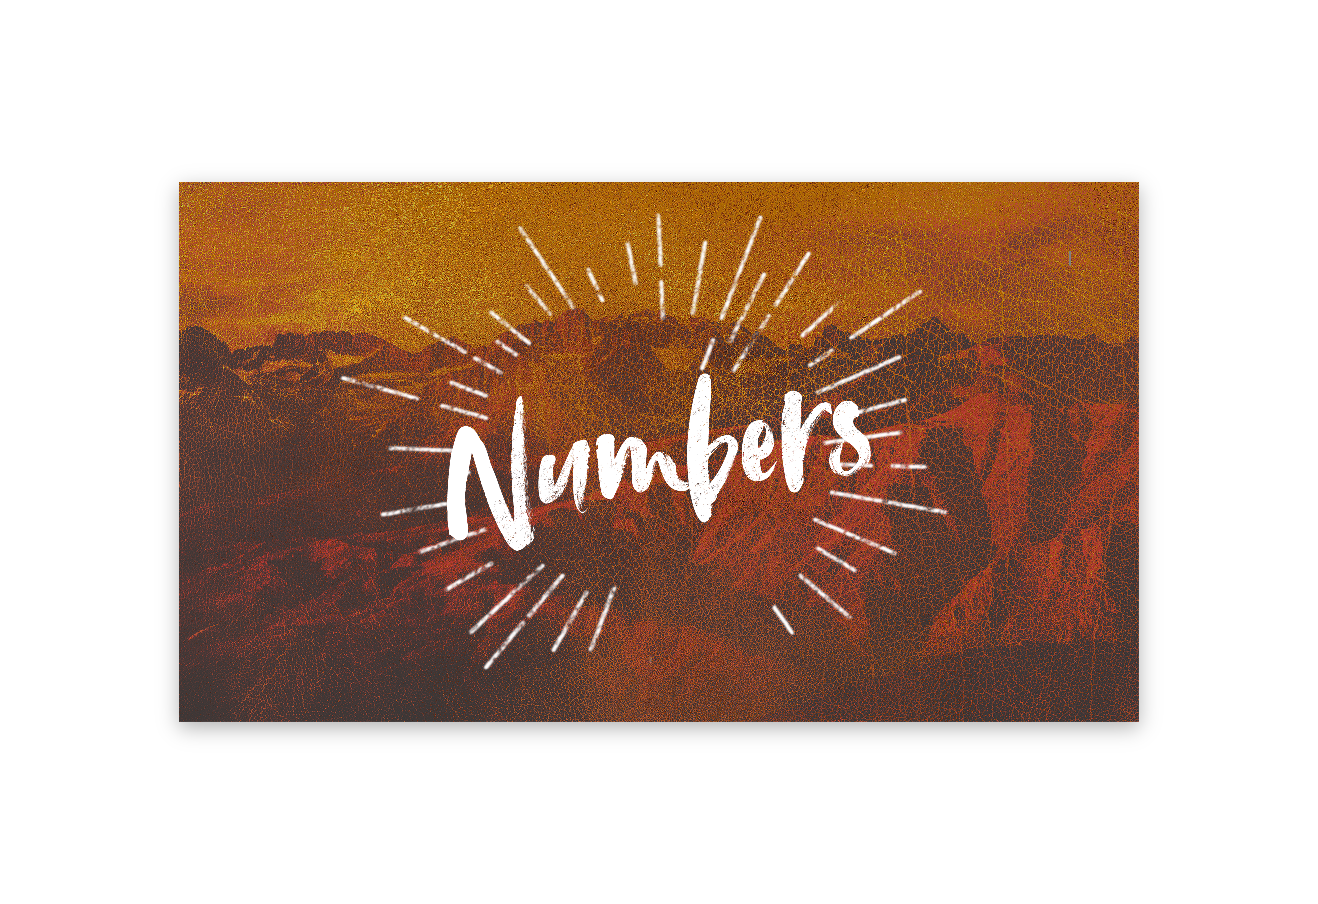 Week 3: Day 3- Numbers 20:7-8